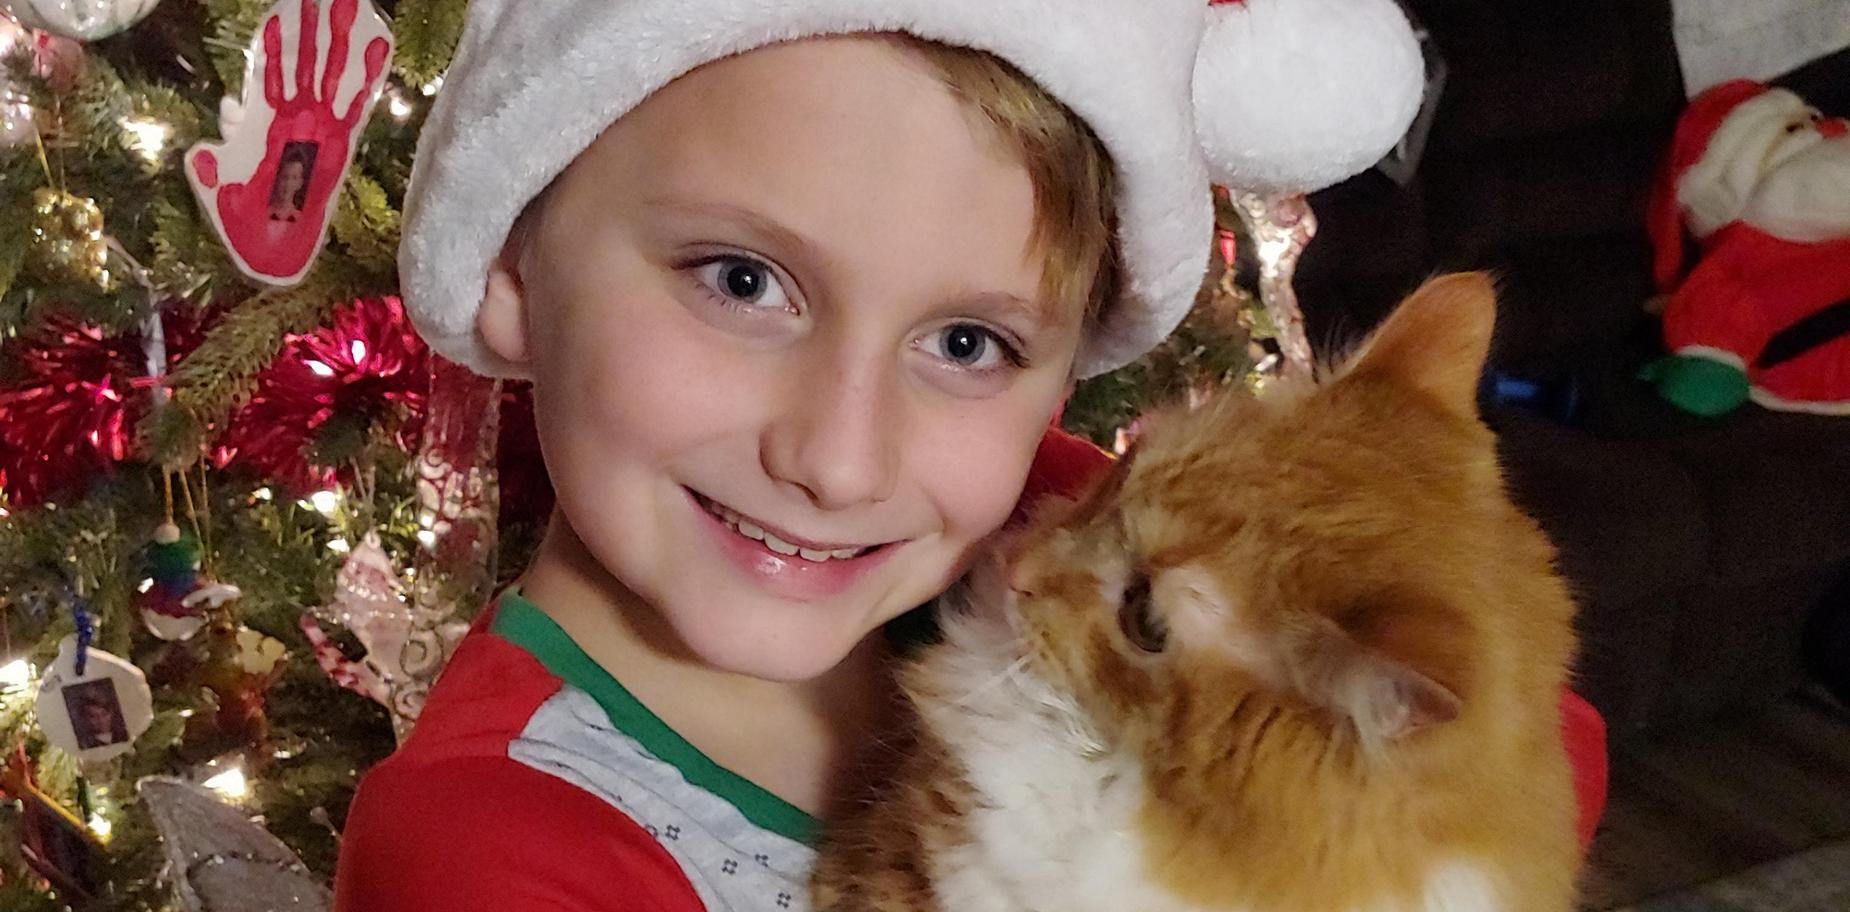 boy in holiday attire with his cat